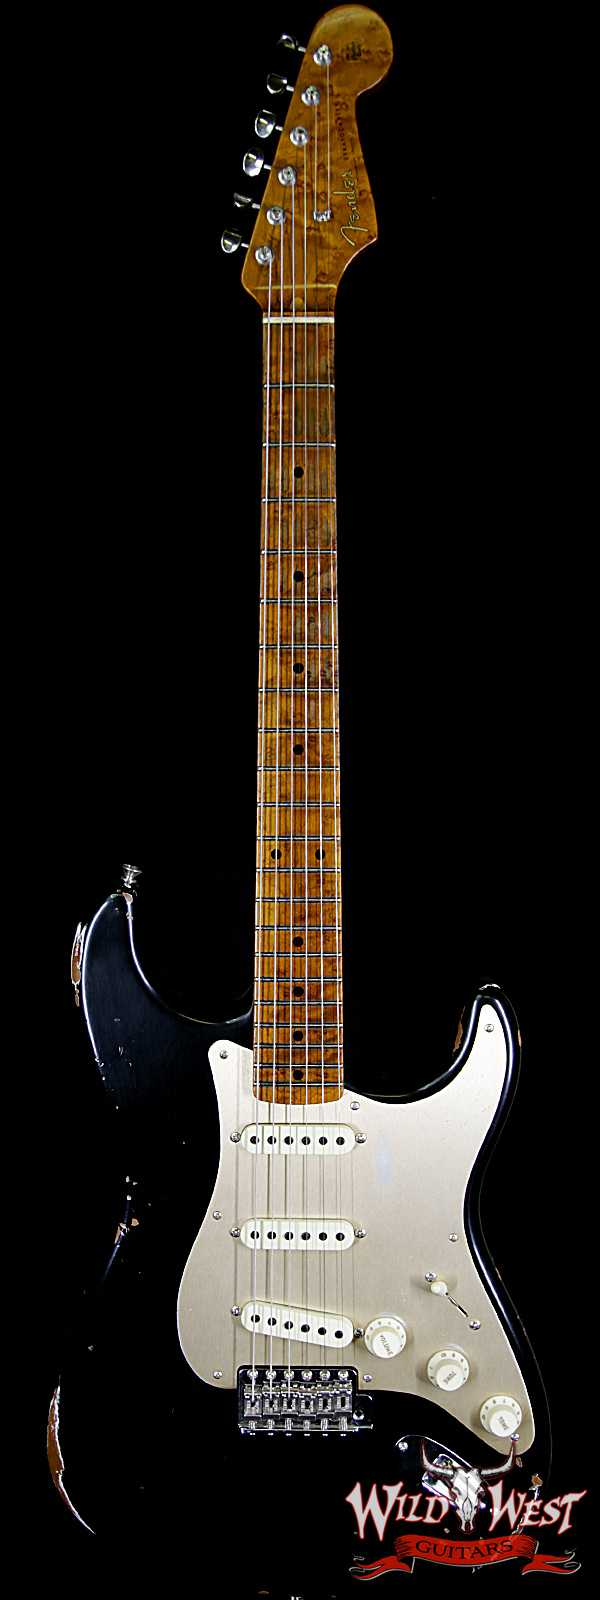 Fender Custom Shop 30th Anniversary LTD 1956 Stratocaster Relic Roasted Birdseye Neck & Fingerboard Aged Black